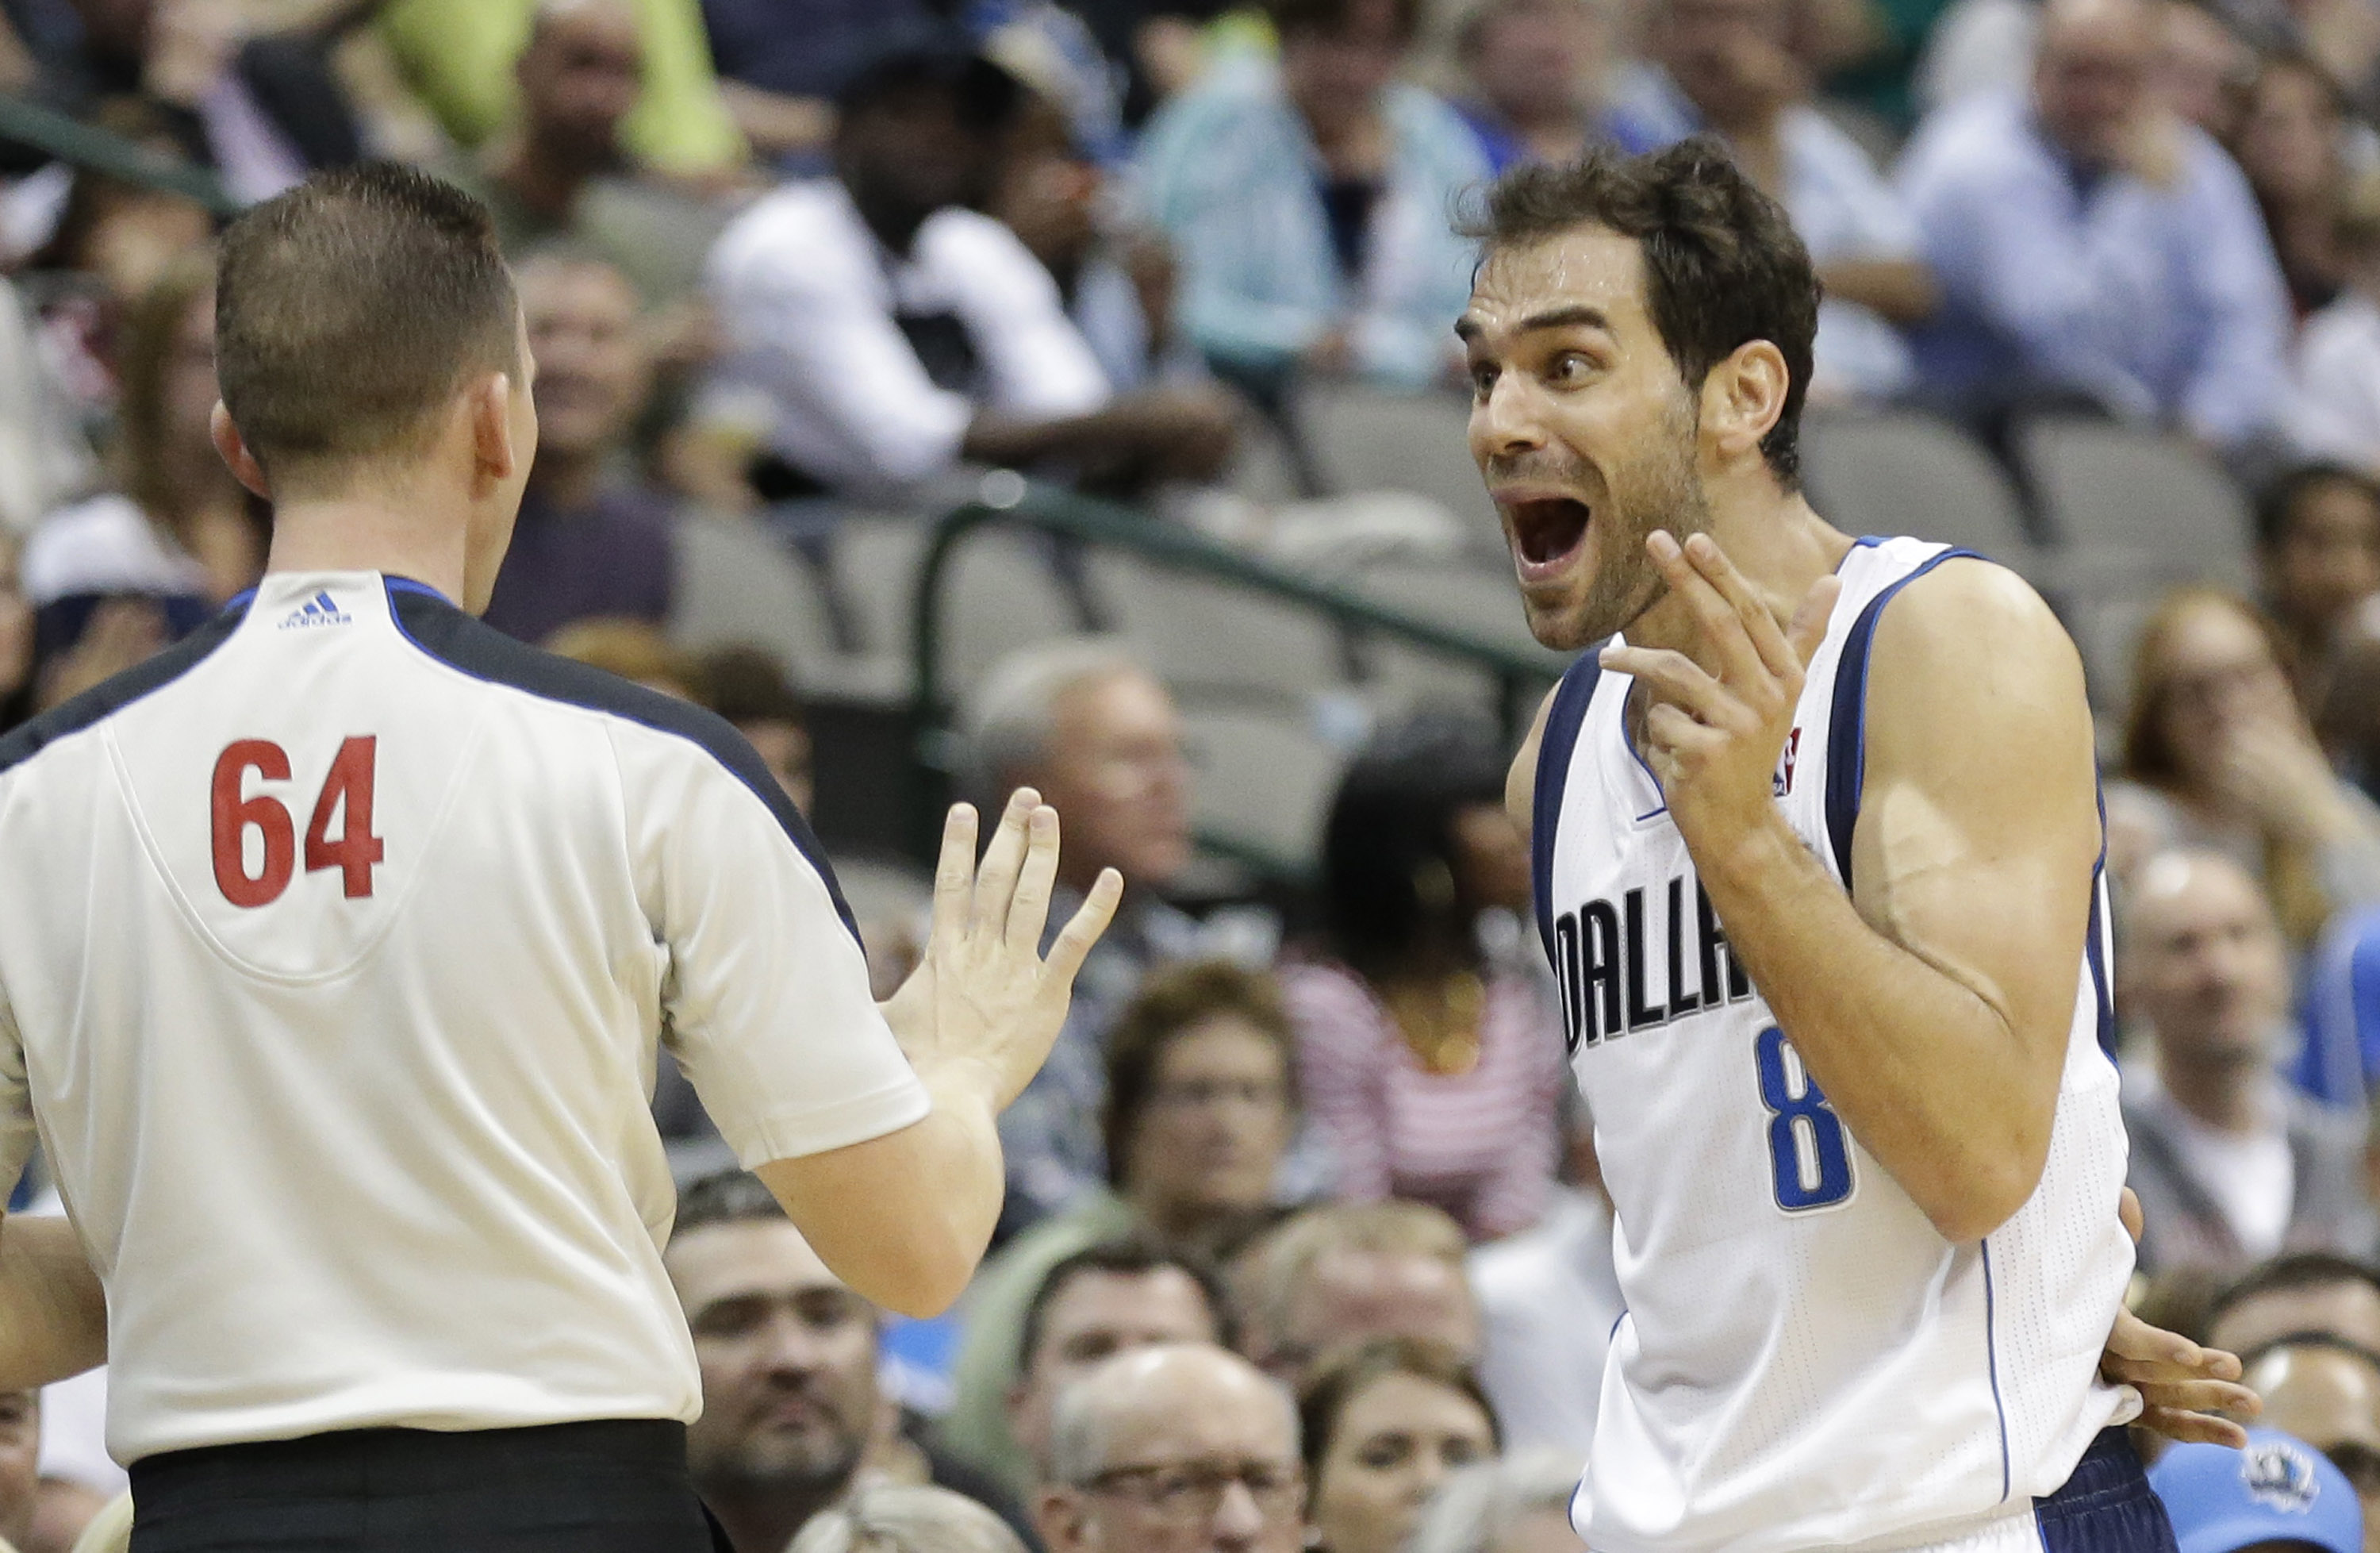 Dallas Mavericks guard Jose Calderon (8) of Spain reacts to an out-of-bounds call against the Mavericks by referee Justin VanDuyne (64) during the second half of an NBA basketball game against the Philadelphia 76ers in Dallas, Monday, Nov. 18, 2013. The call was overturned on a replay giving the Mavericks possession. The Mavericks won 97-94